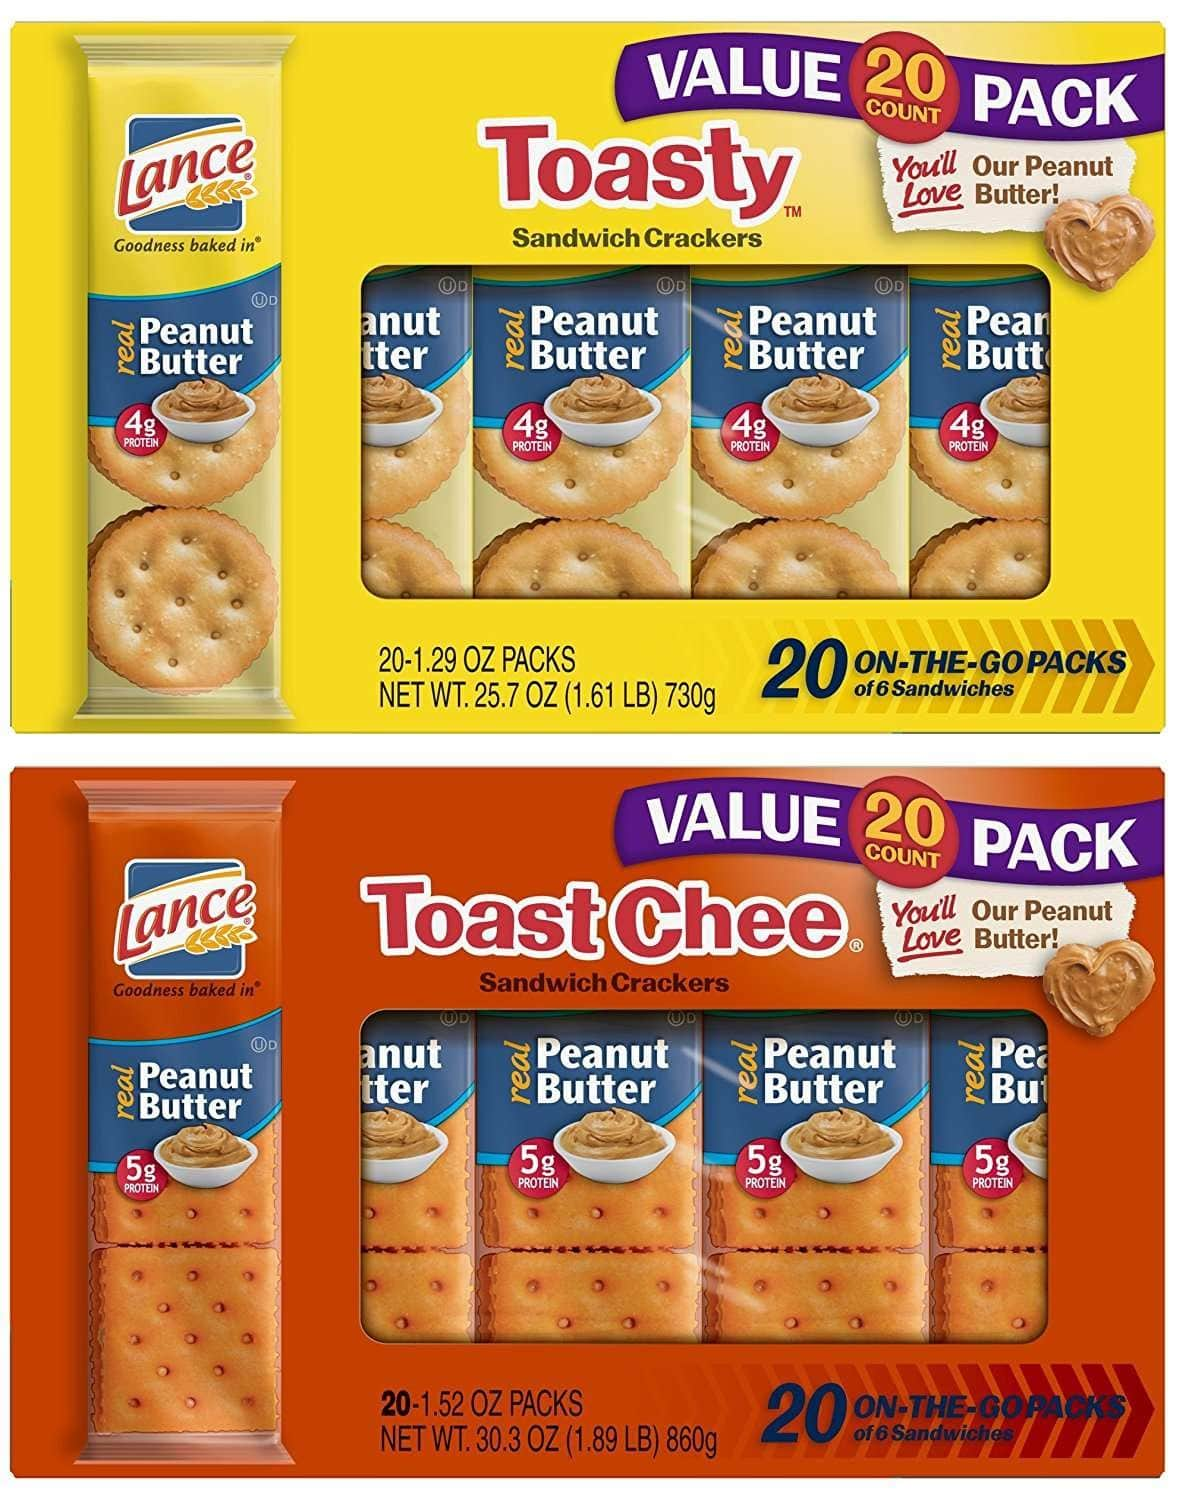 Lance Toasty and Toastchee Assorted Sandwich Crackers, 40 Count, $8.05 after coupon with Subscribe and Save